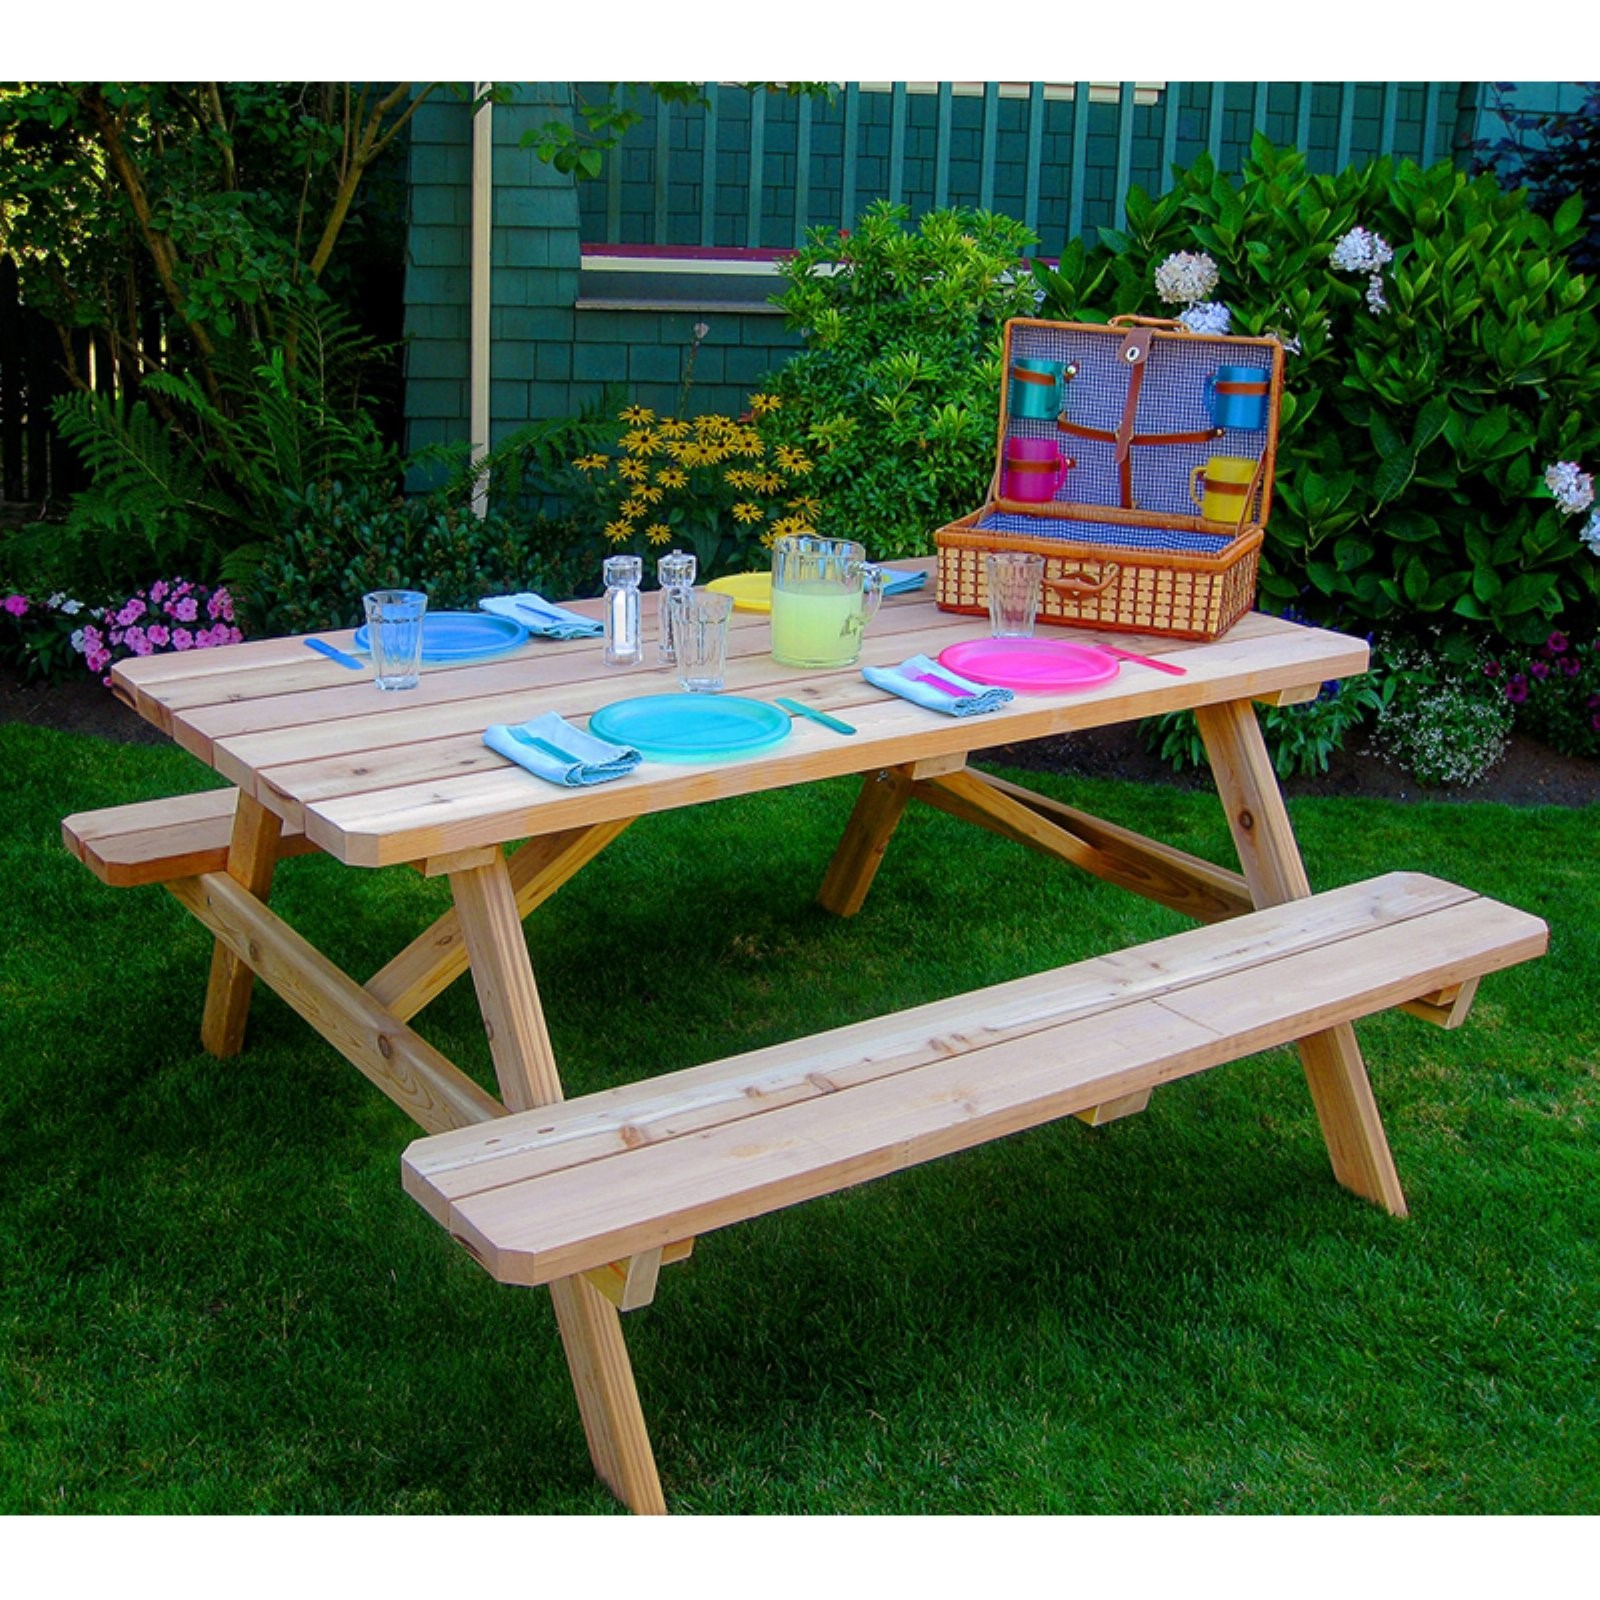 Outdoor Living Today Western Red Cedar 6 ft. Picnic Table